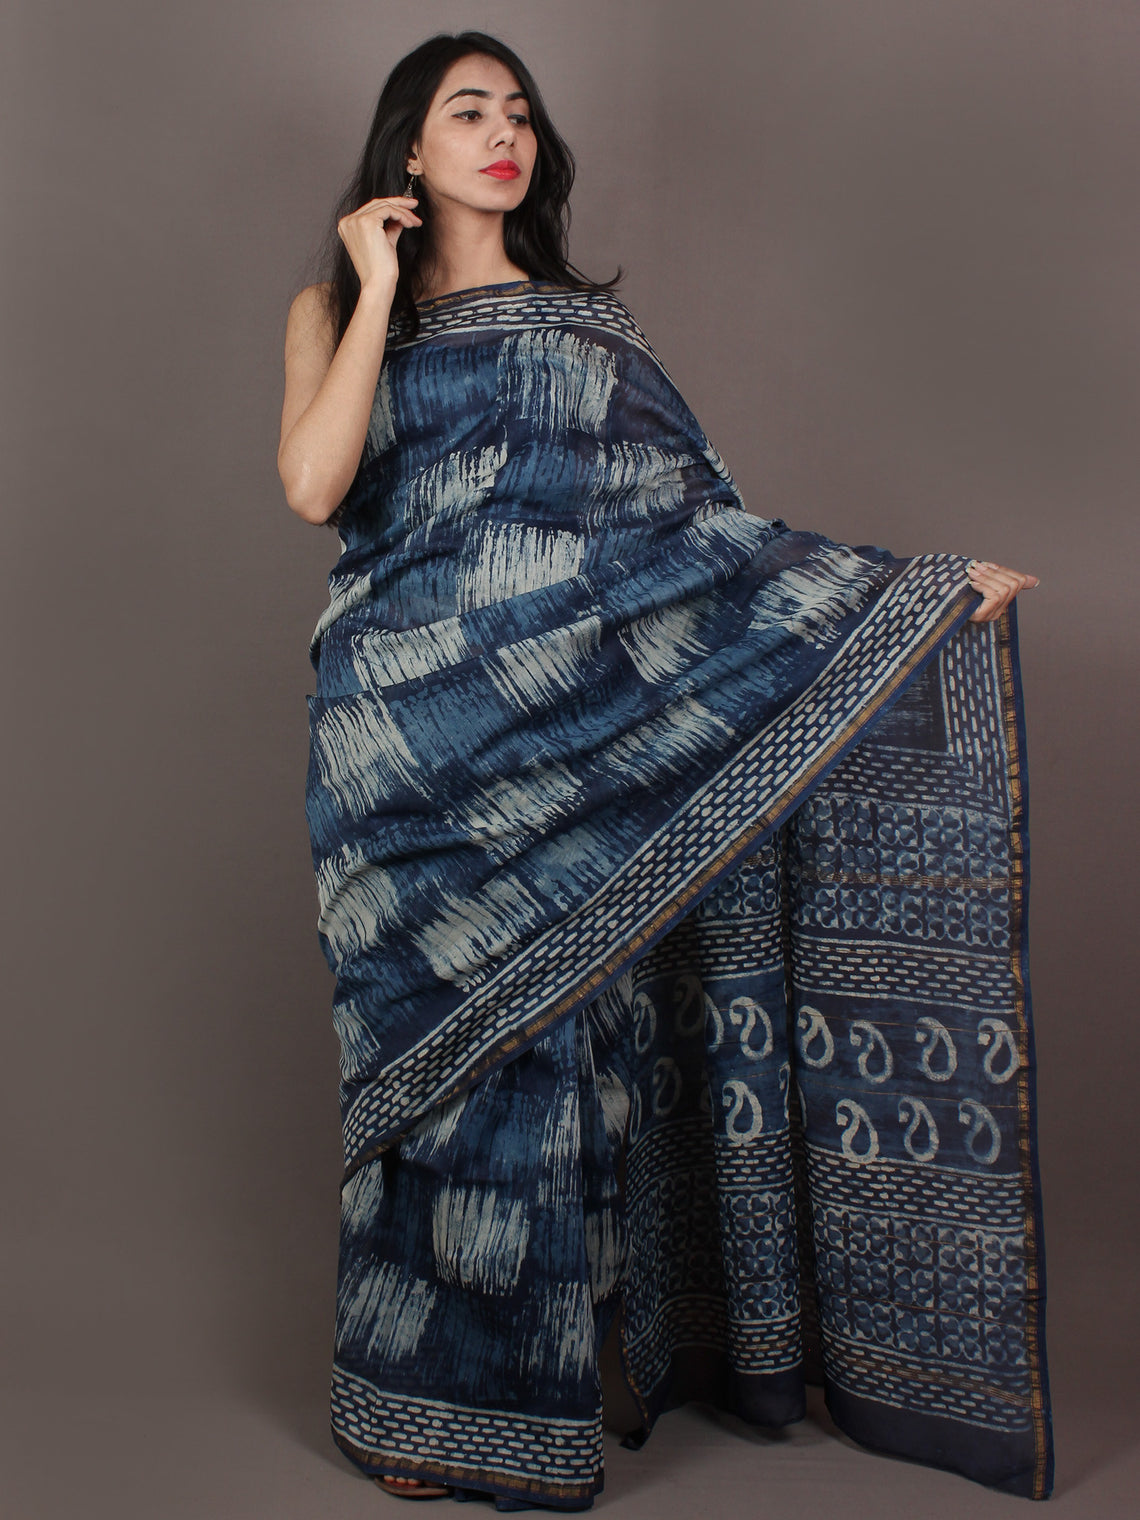 Indigo Ivory Blue Hand Block Printed in Natural Colors Chanderi Saree - S031701090